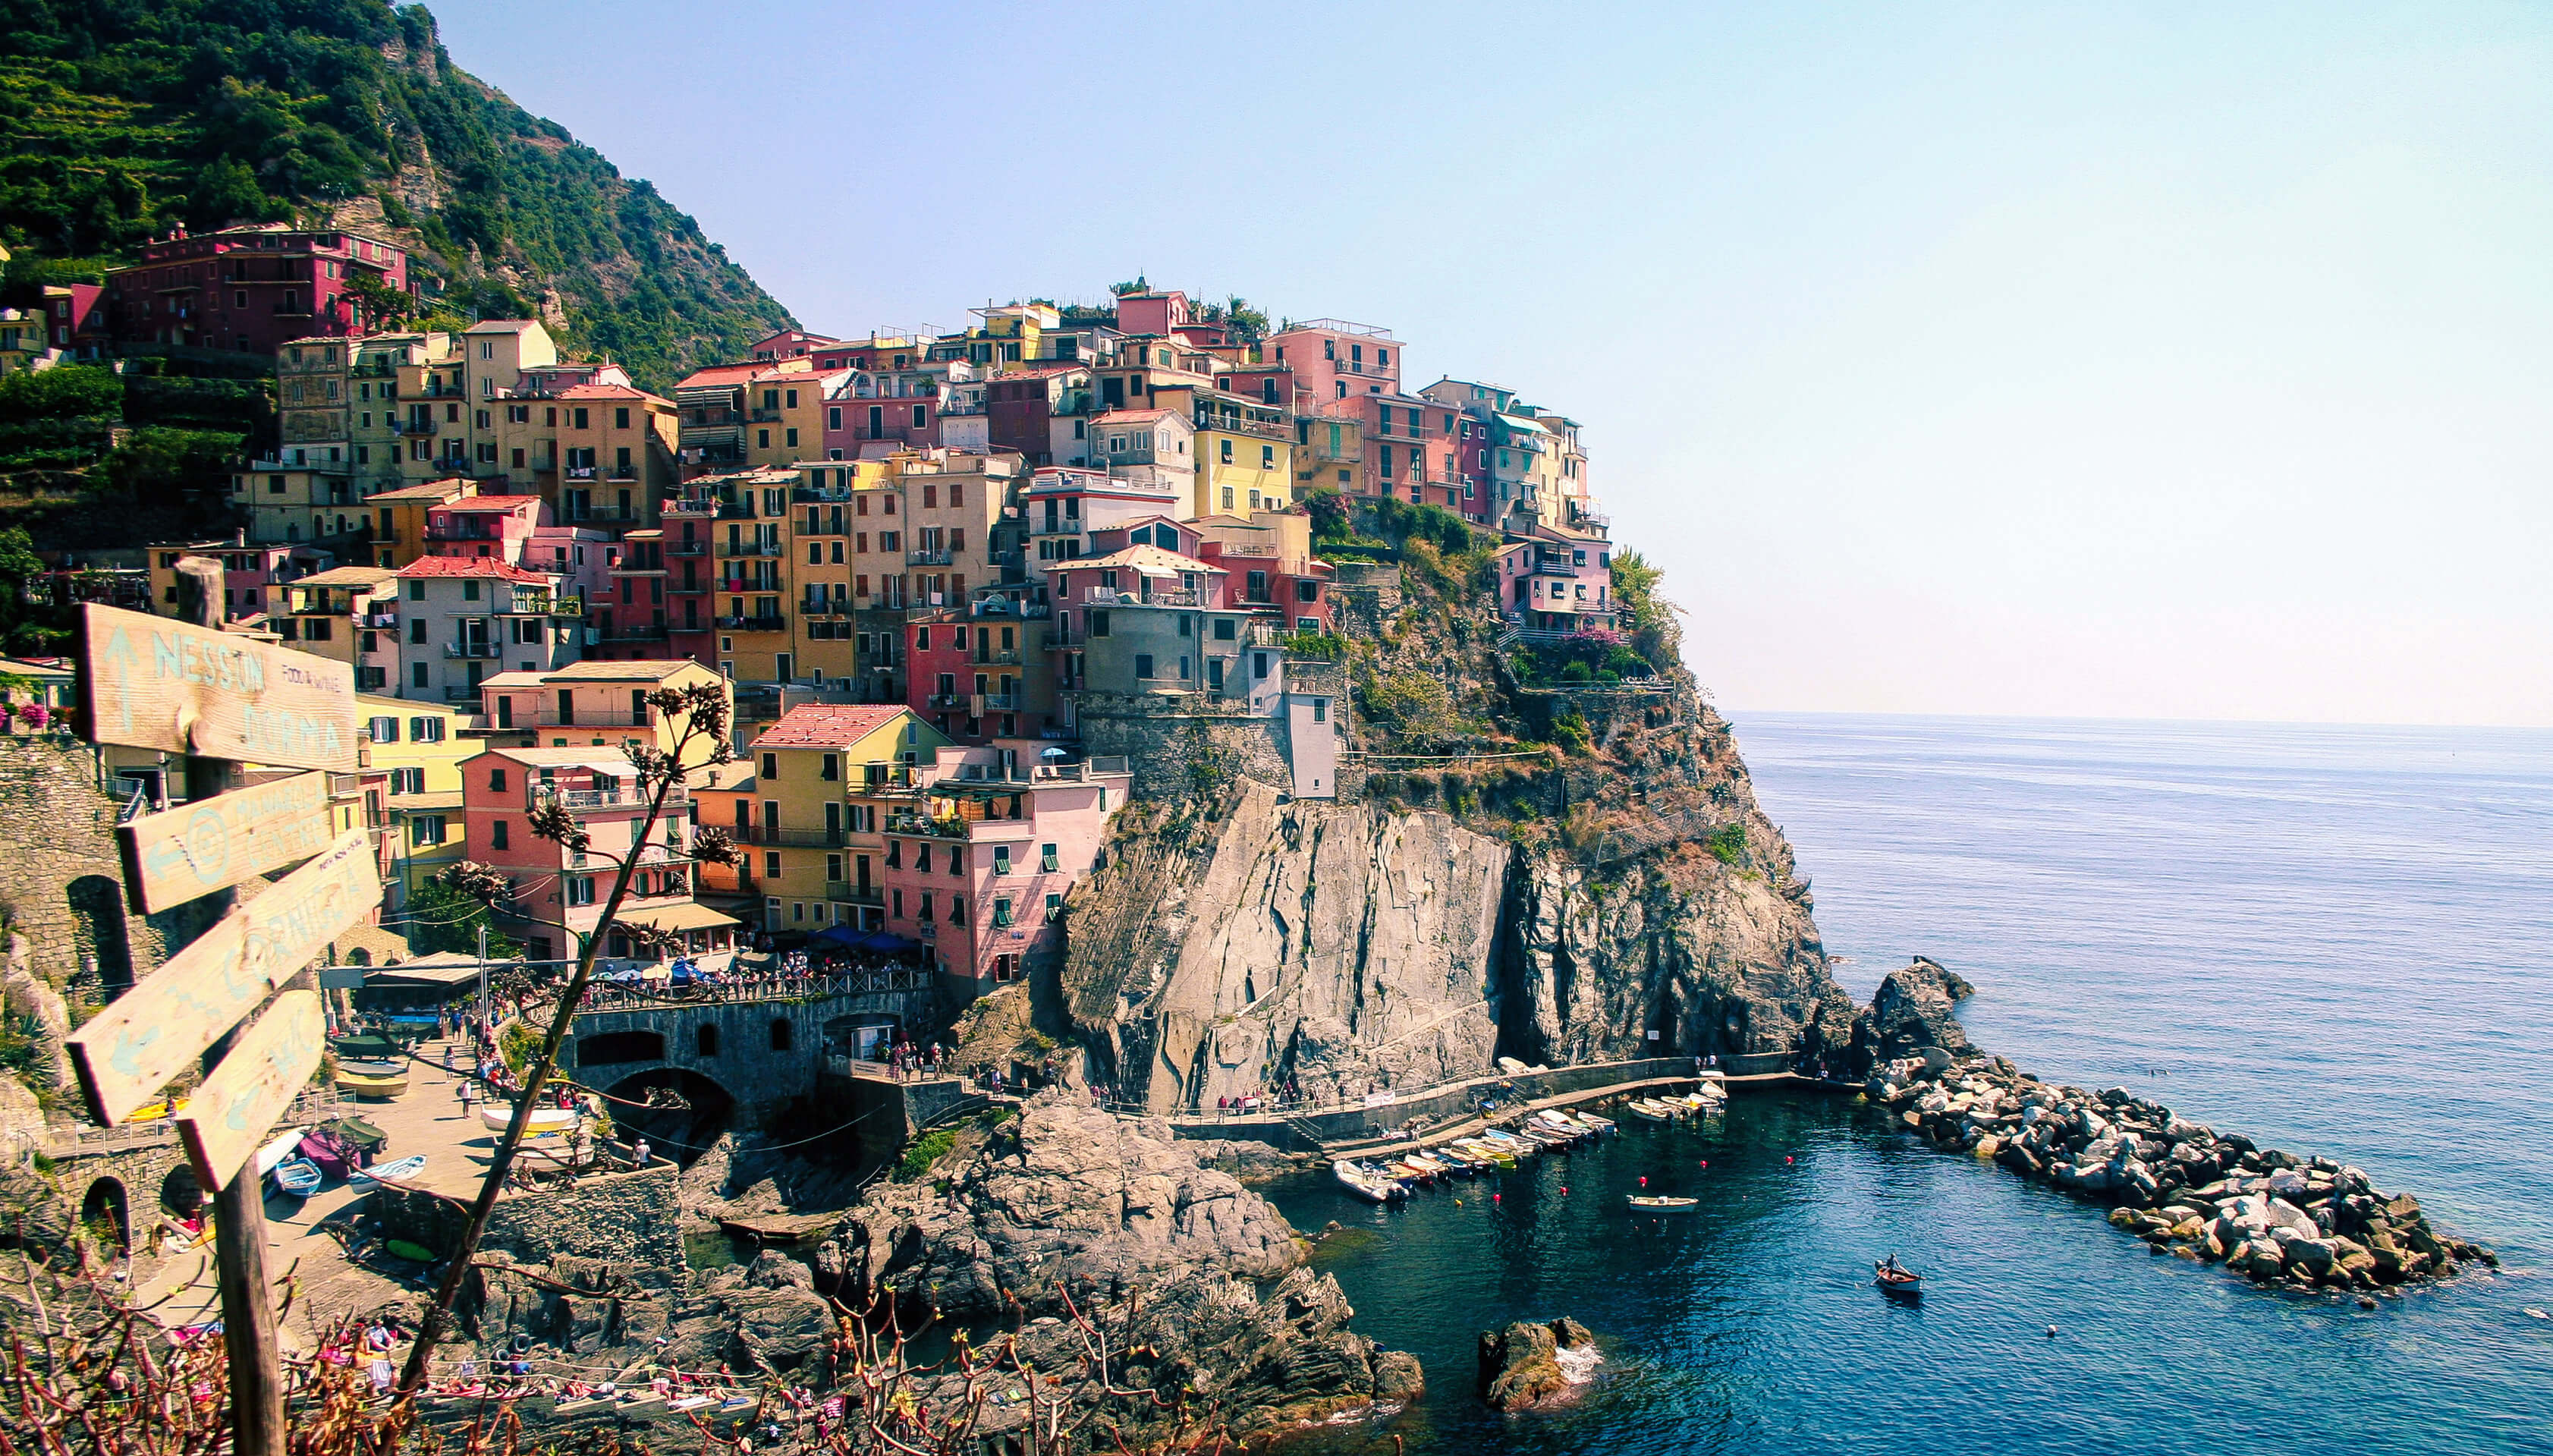 CINQUE TERRE: THE COAST WITH THE MOST